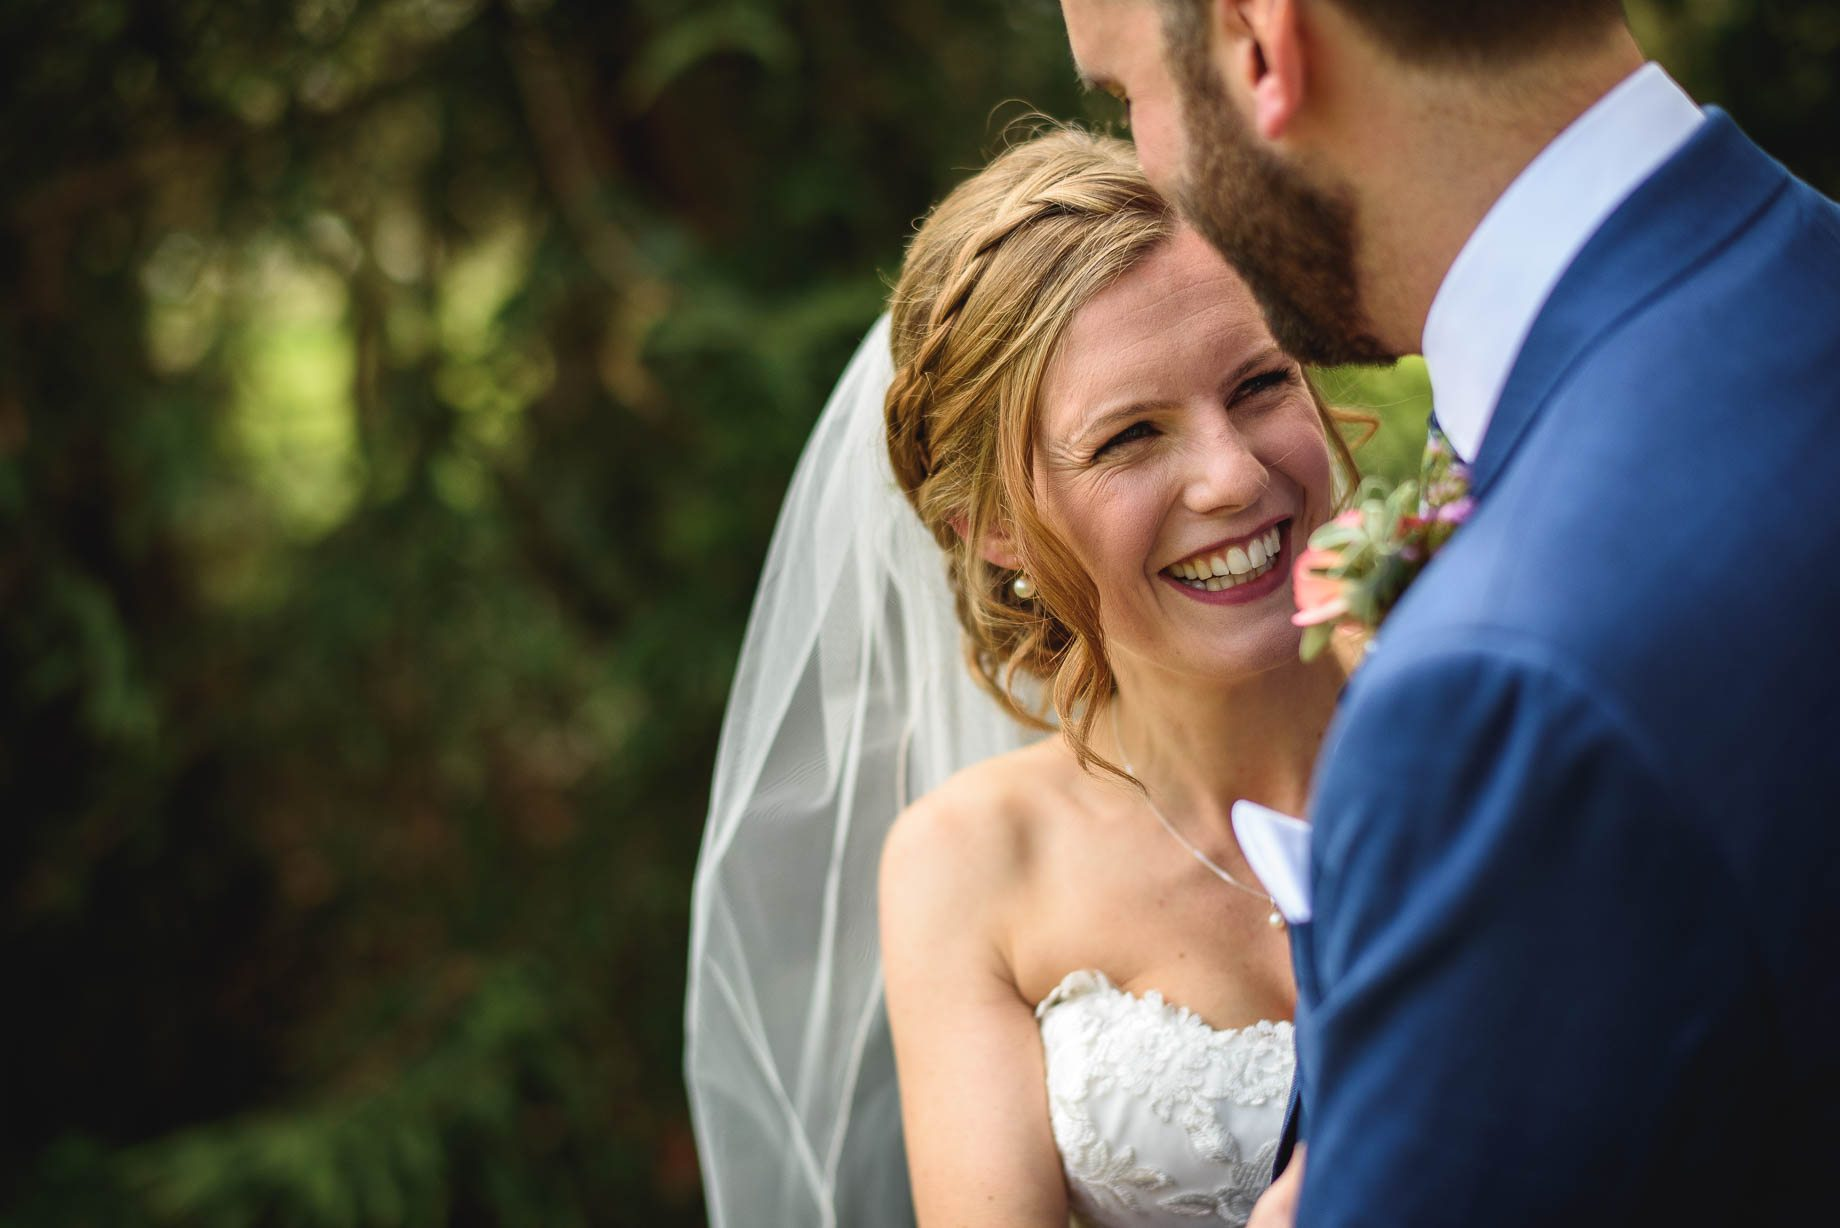 Rivervale Barn wedding photography by Guy Collier - Claire and Simon (82 of 133)